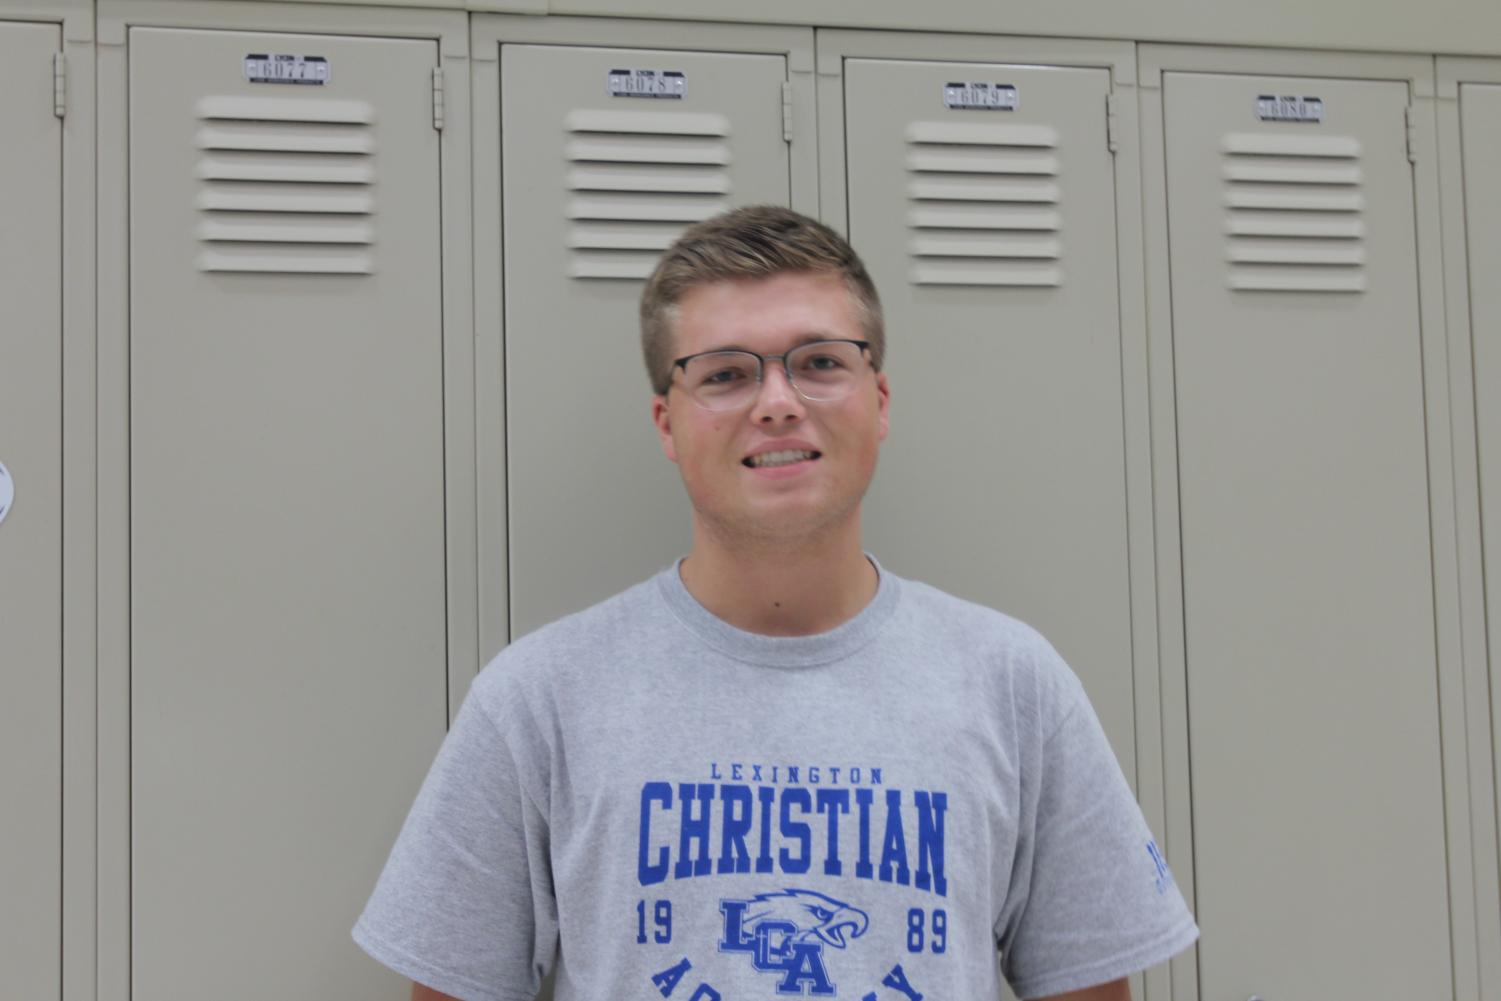 Nathan Maggard is the student council president.